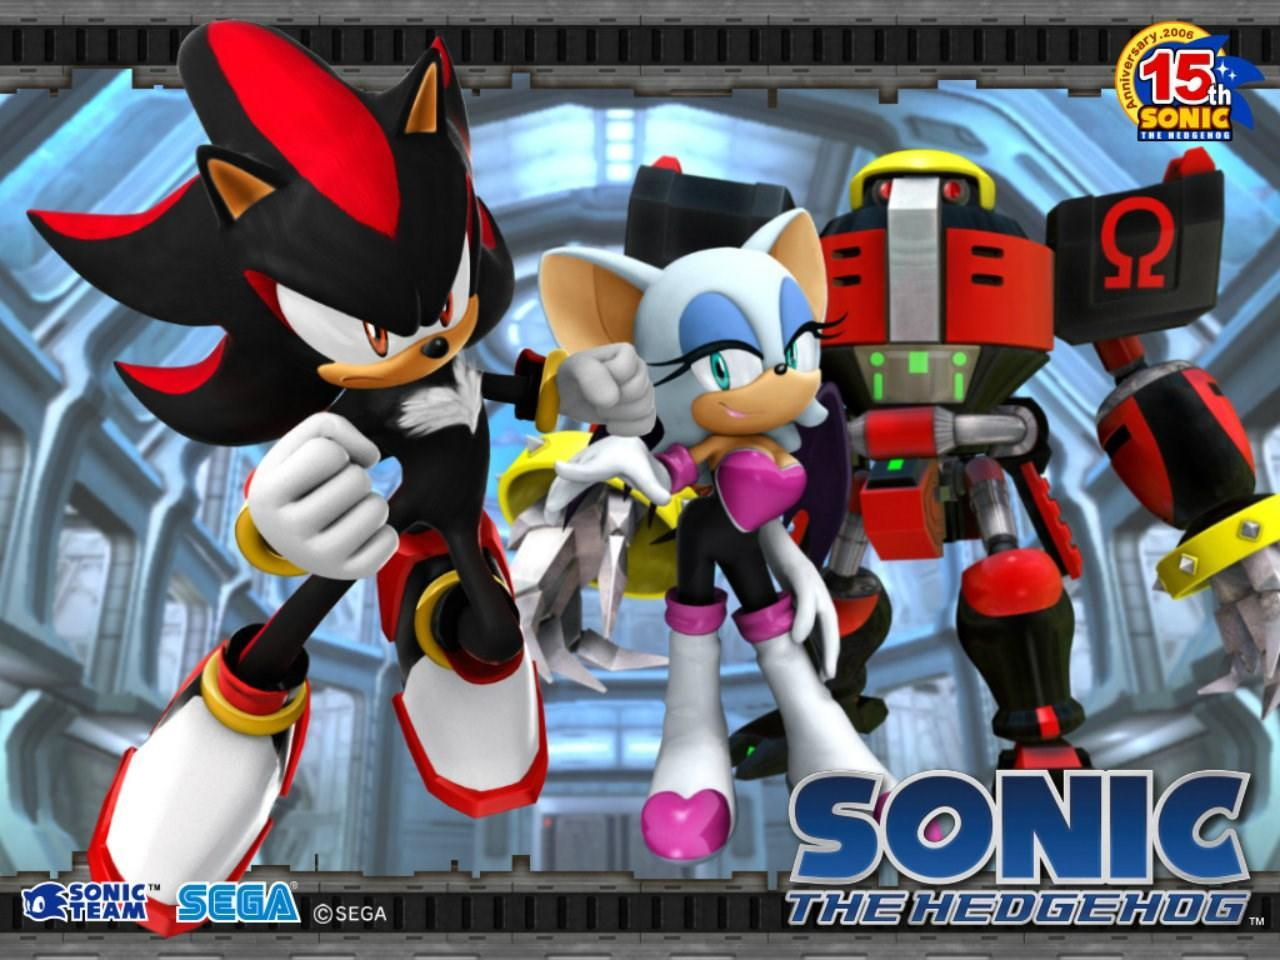 New Sonic Hedgehog Lock Screen Hd Wallpapers For Android Apk